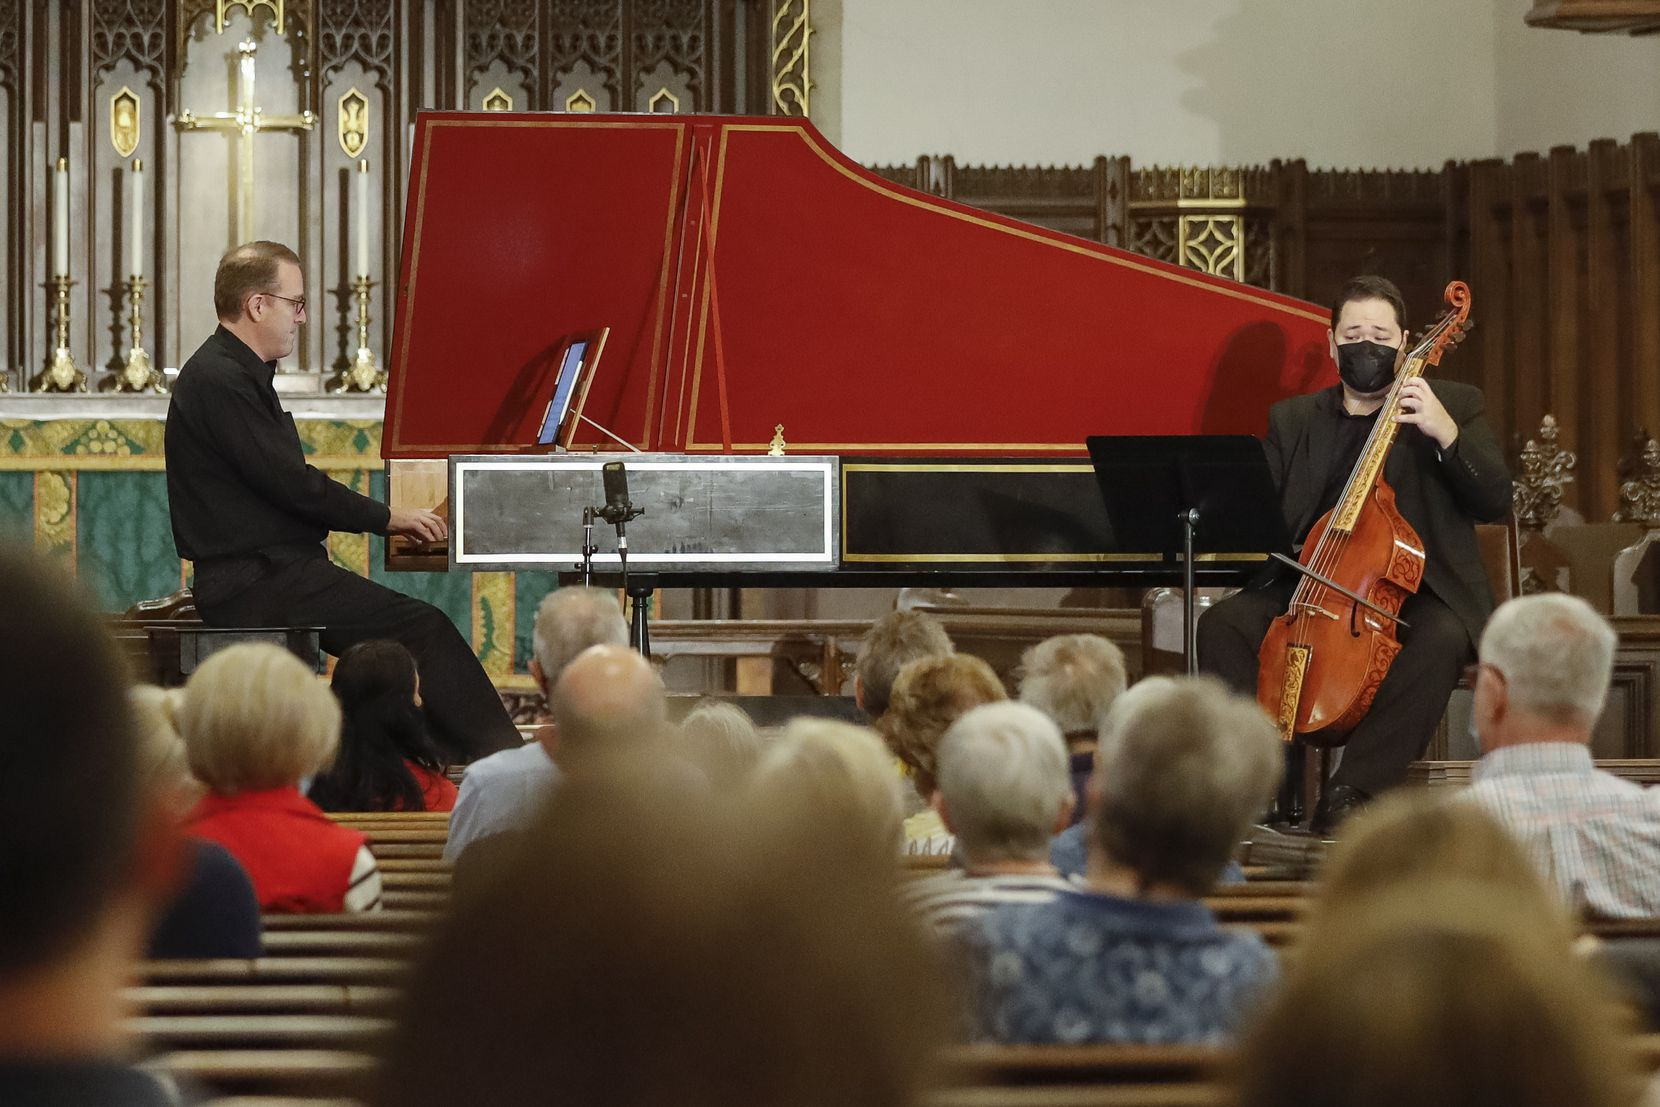 Scott Dettra (left) plays the harpsichord while Eric Smith plays the viola da gamba during the Bach's Lunch concert at Church of the Incarnation on Sept. 14, 2021, in Dallas.